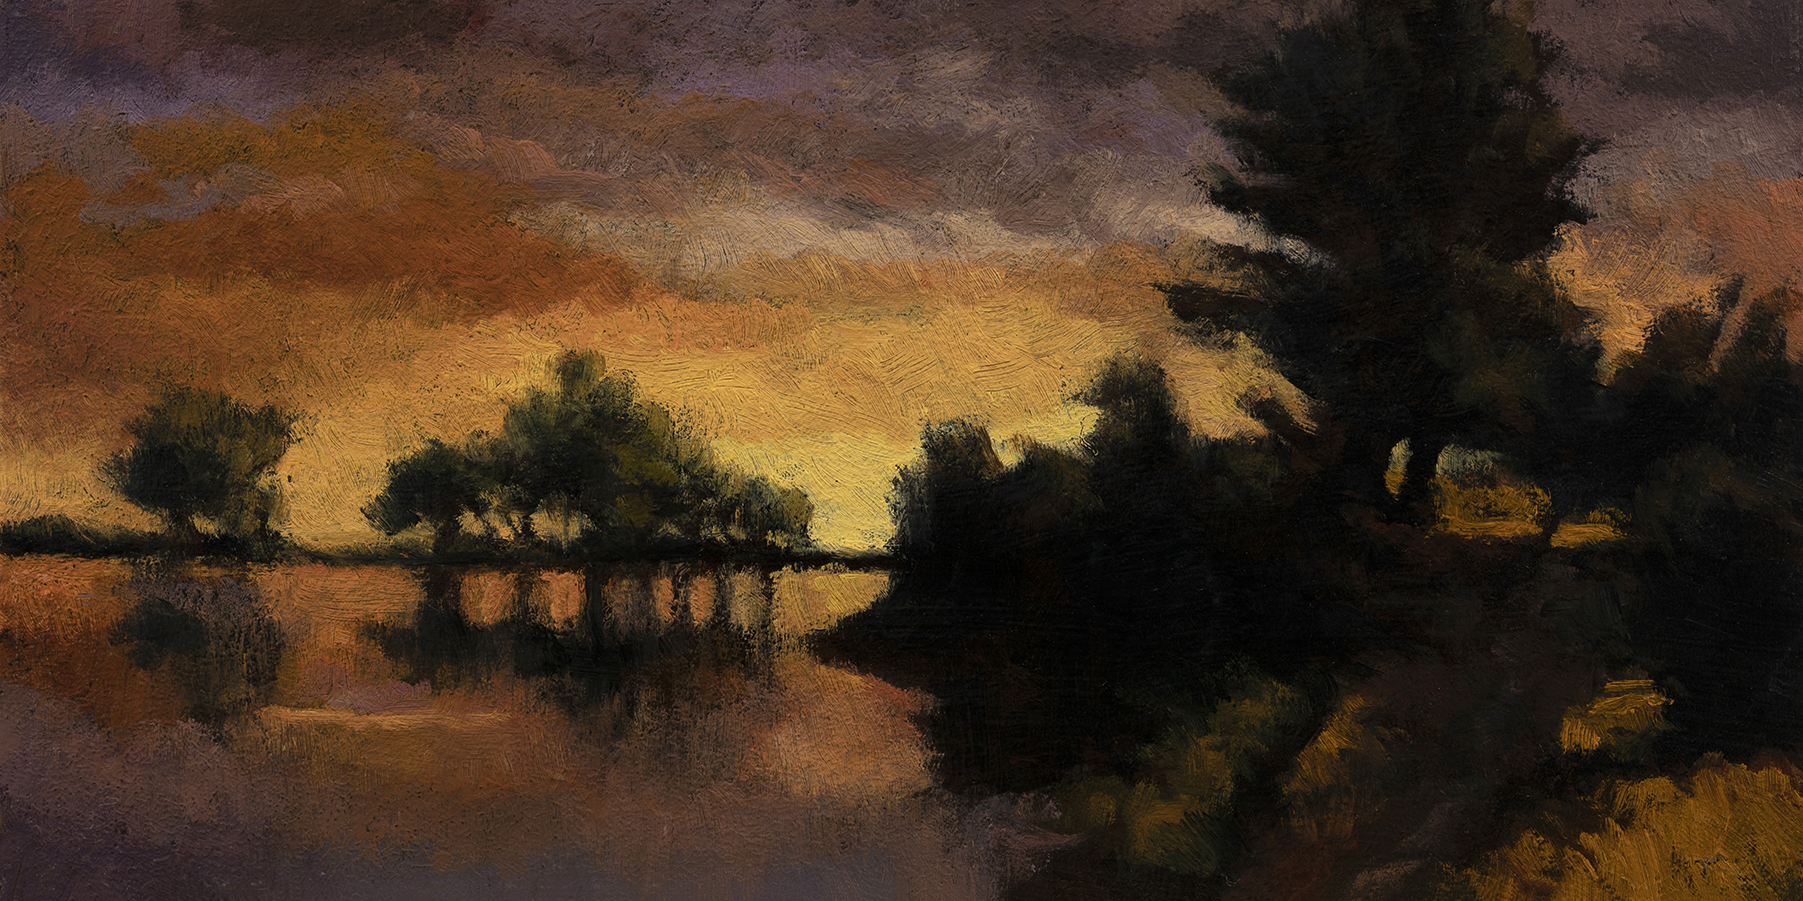 Twilight Pond by M Francis McCarthy - 5x10 Oil on Wood Panel